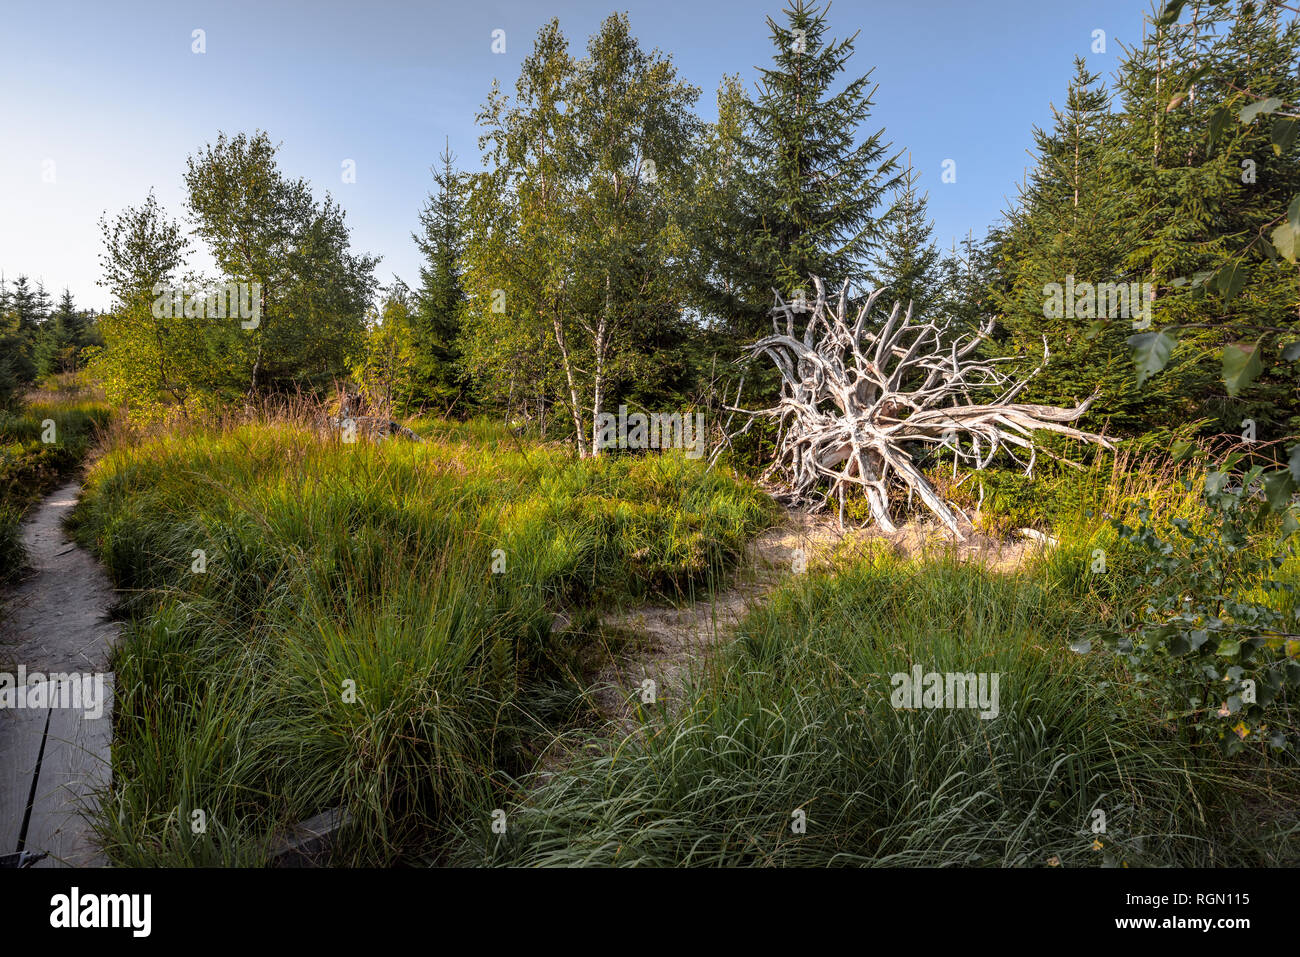 hiking trail Lotharpfad in Northern Black Forest, Germany, conservation area of Bannwald, windthrown root, forest zone without intervention Stock Photo